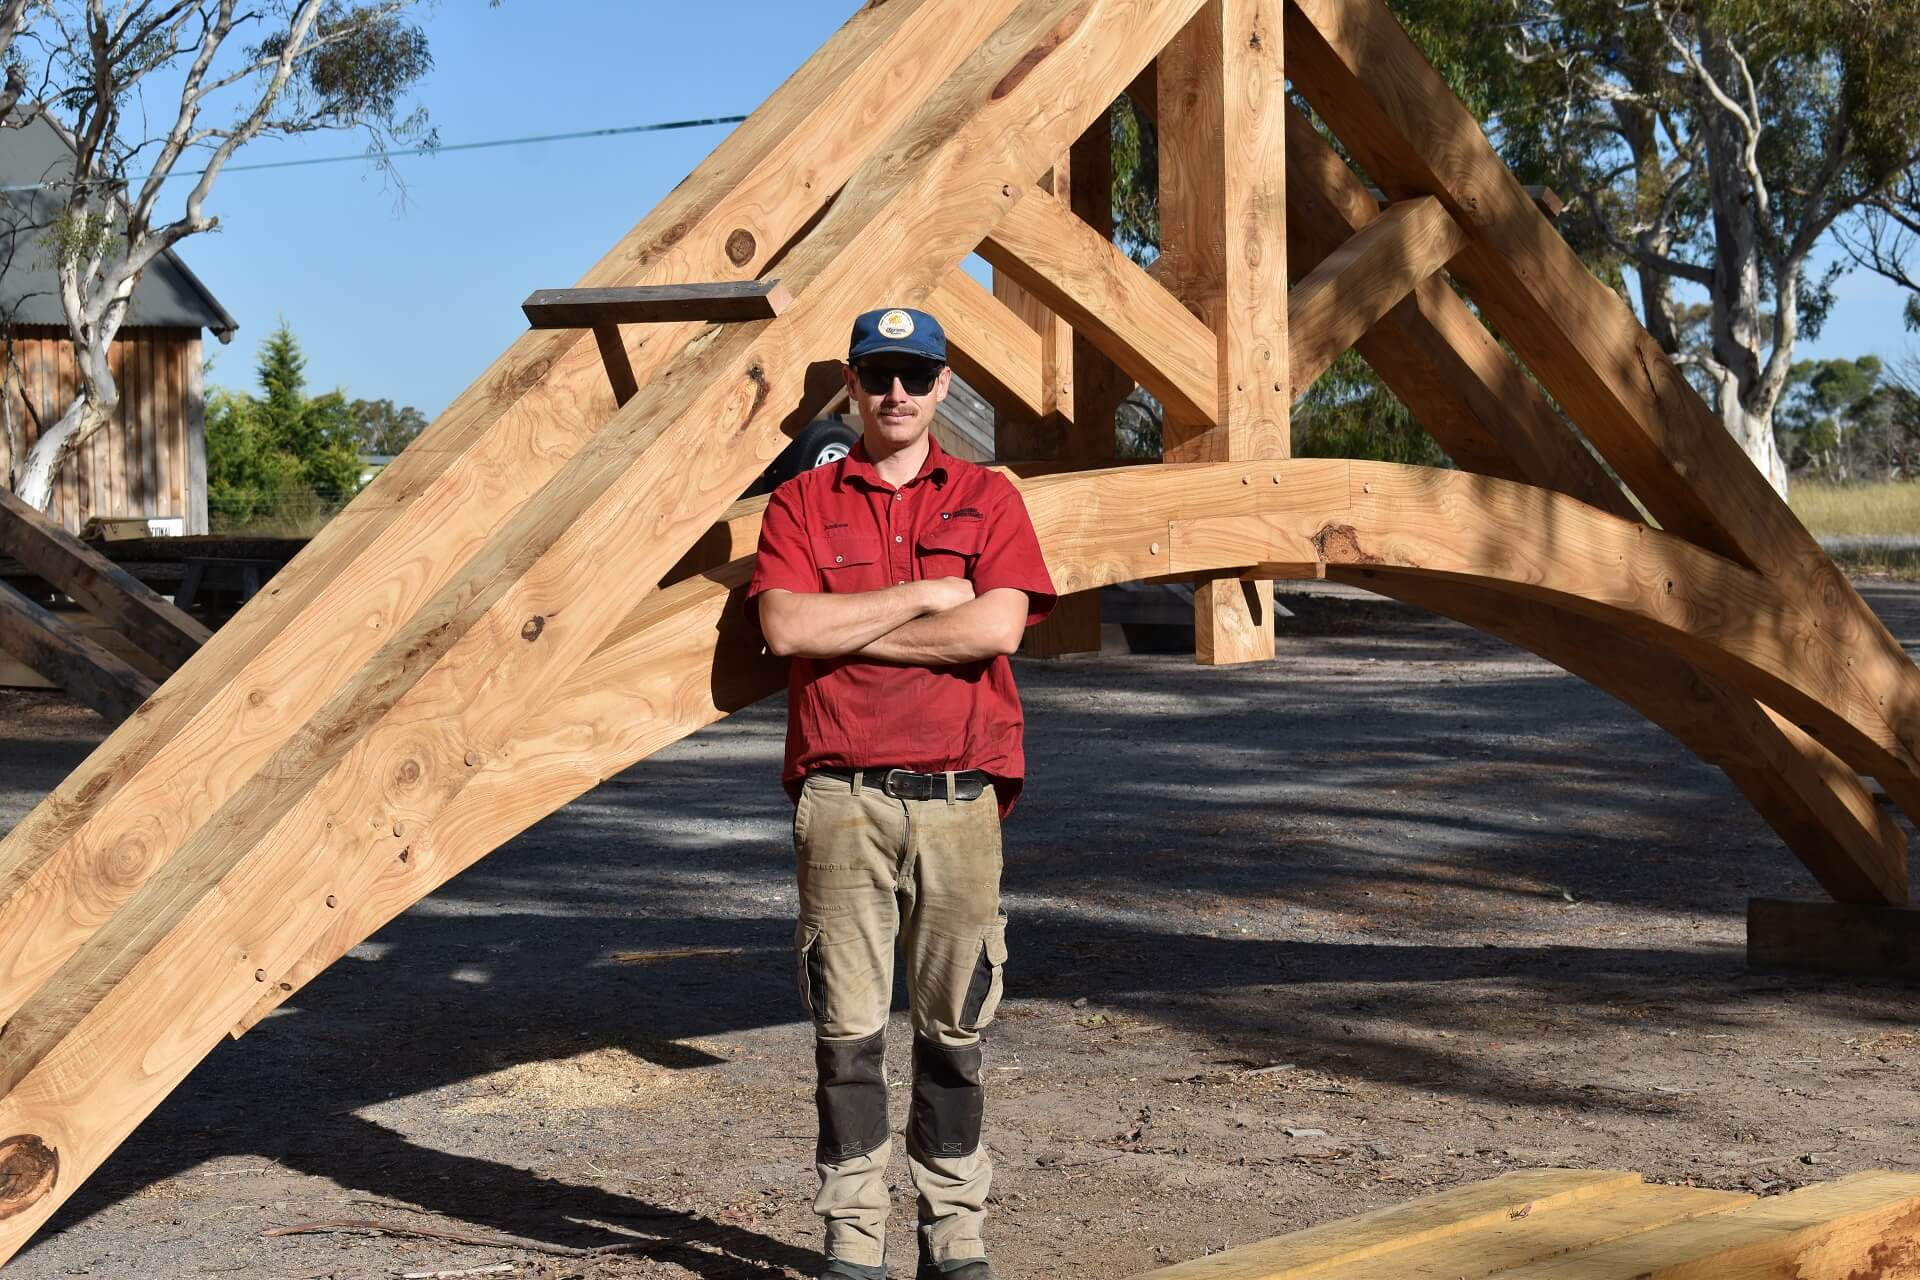 Lead craftsman Andrew Balabka stands proudly by the completed oak trusses